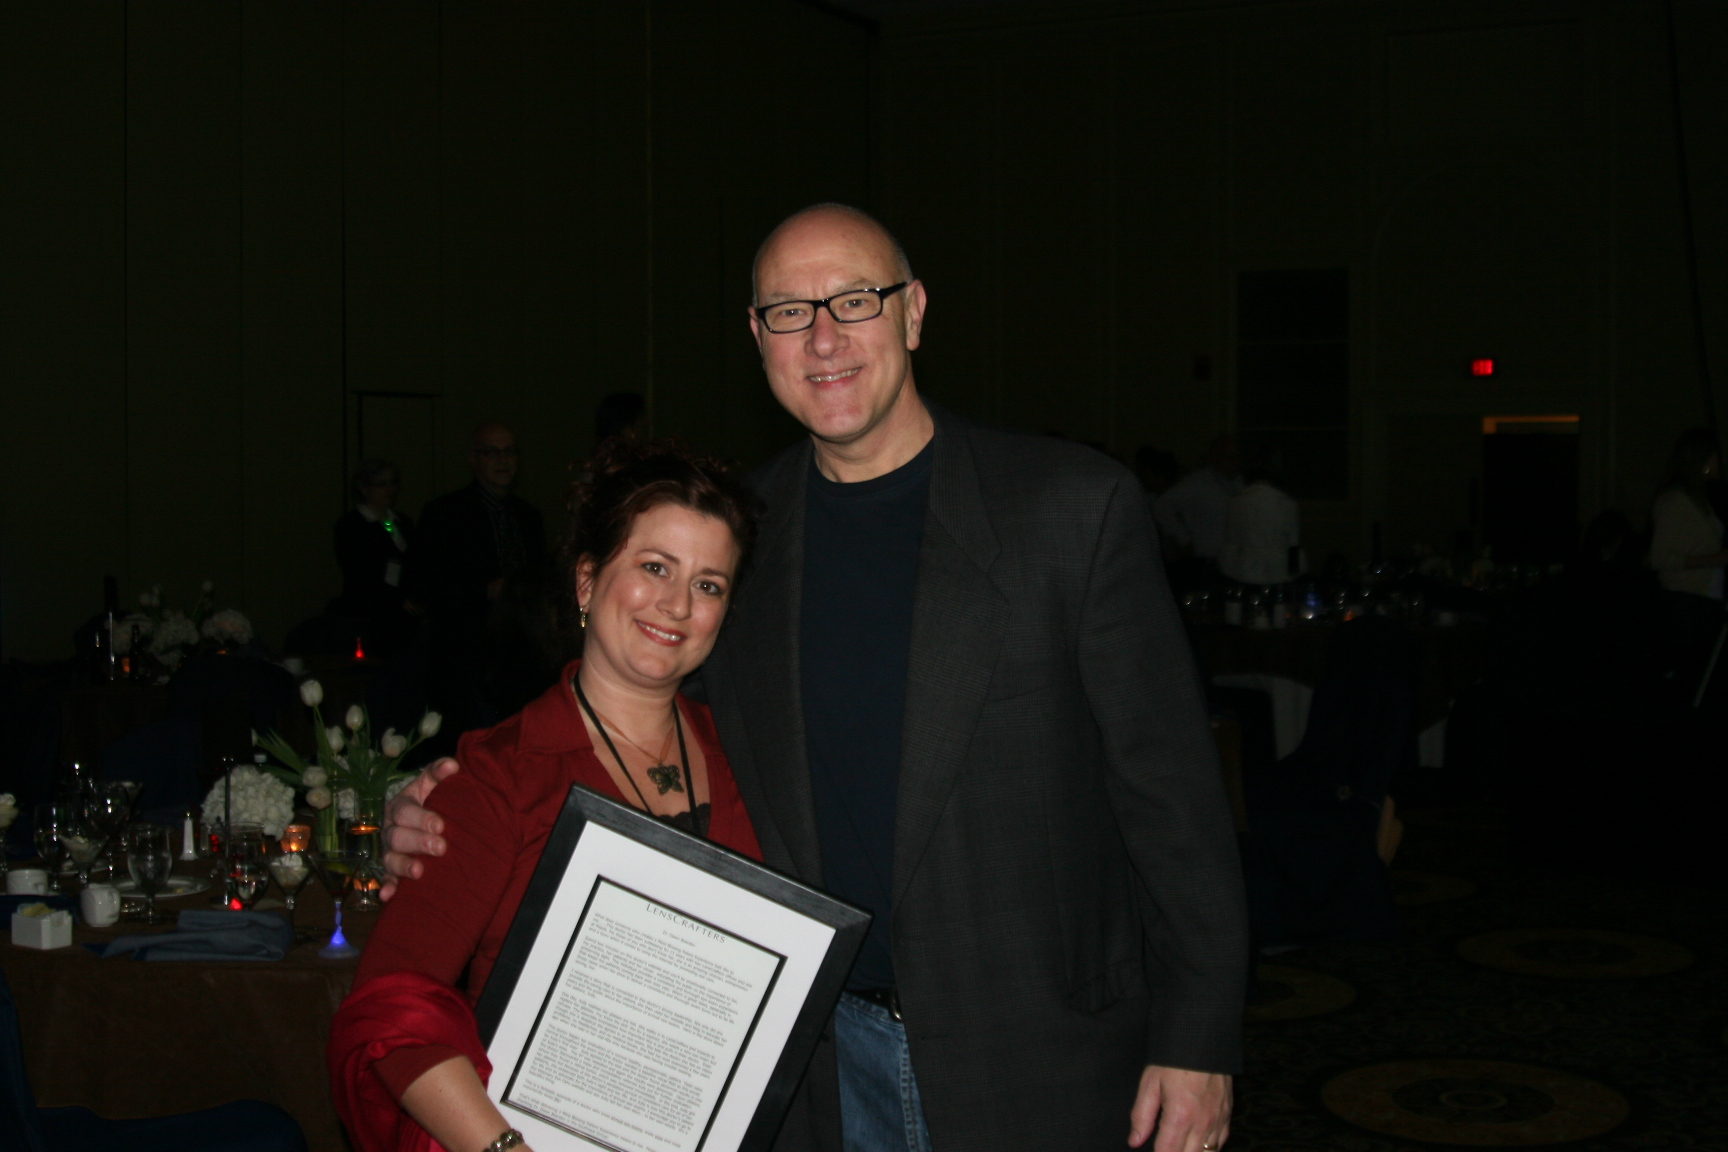 Dr Dawn Bearden and Executive VP of Lenscrafters, Frank Baynham